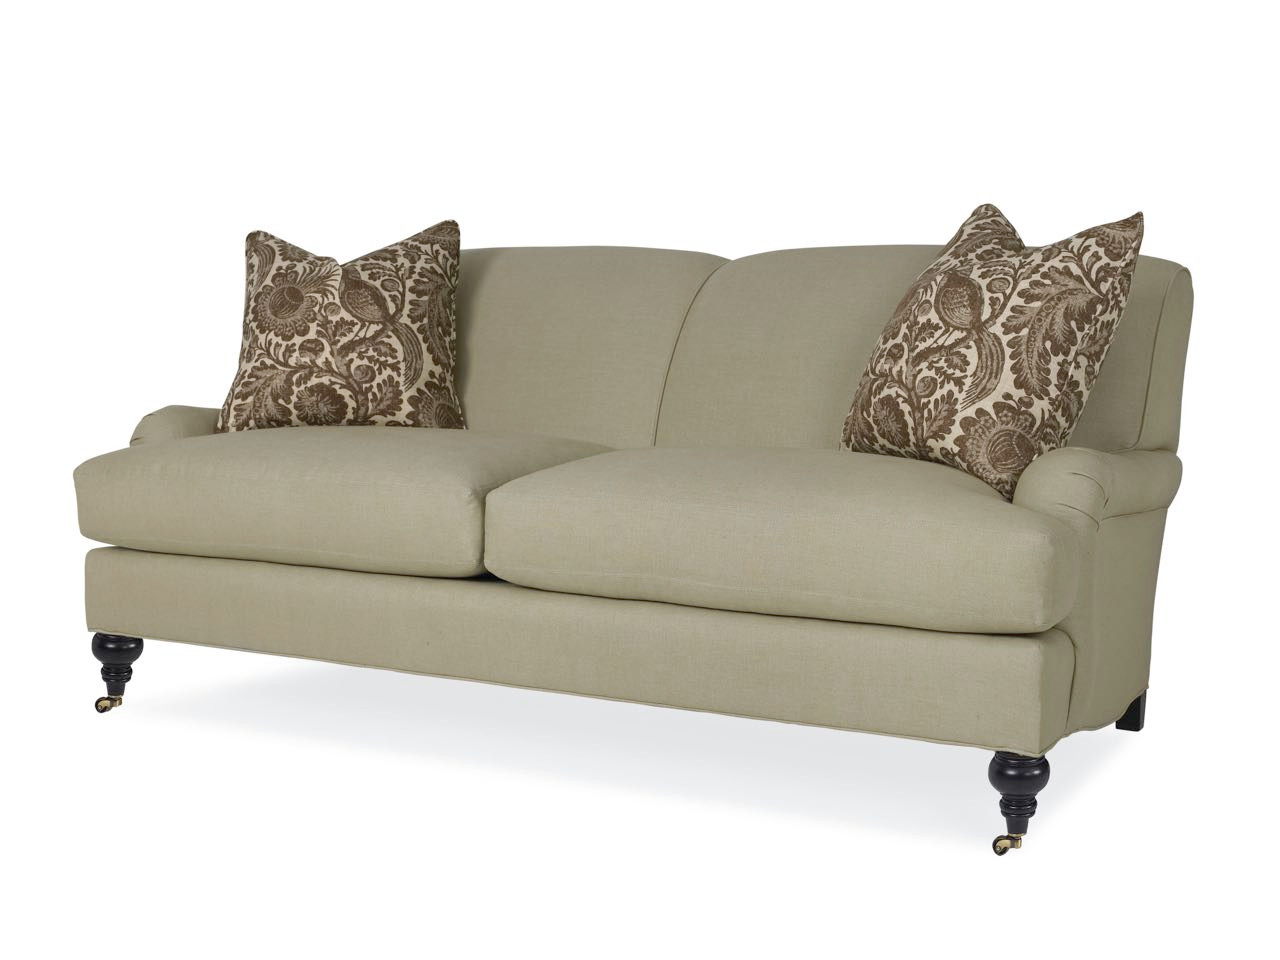 Telford Apartment Sofa | Upholstered Apartment Sofas ...